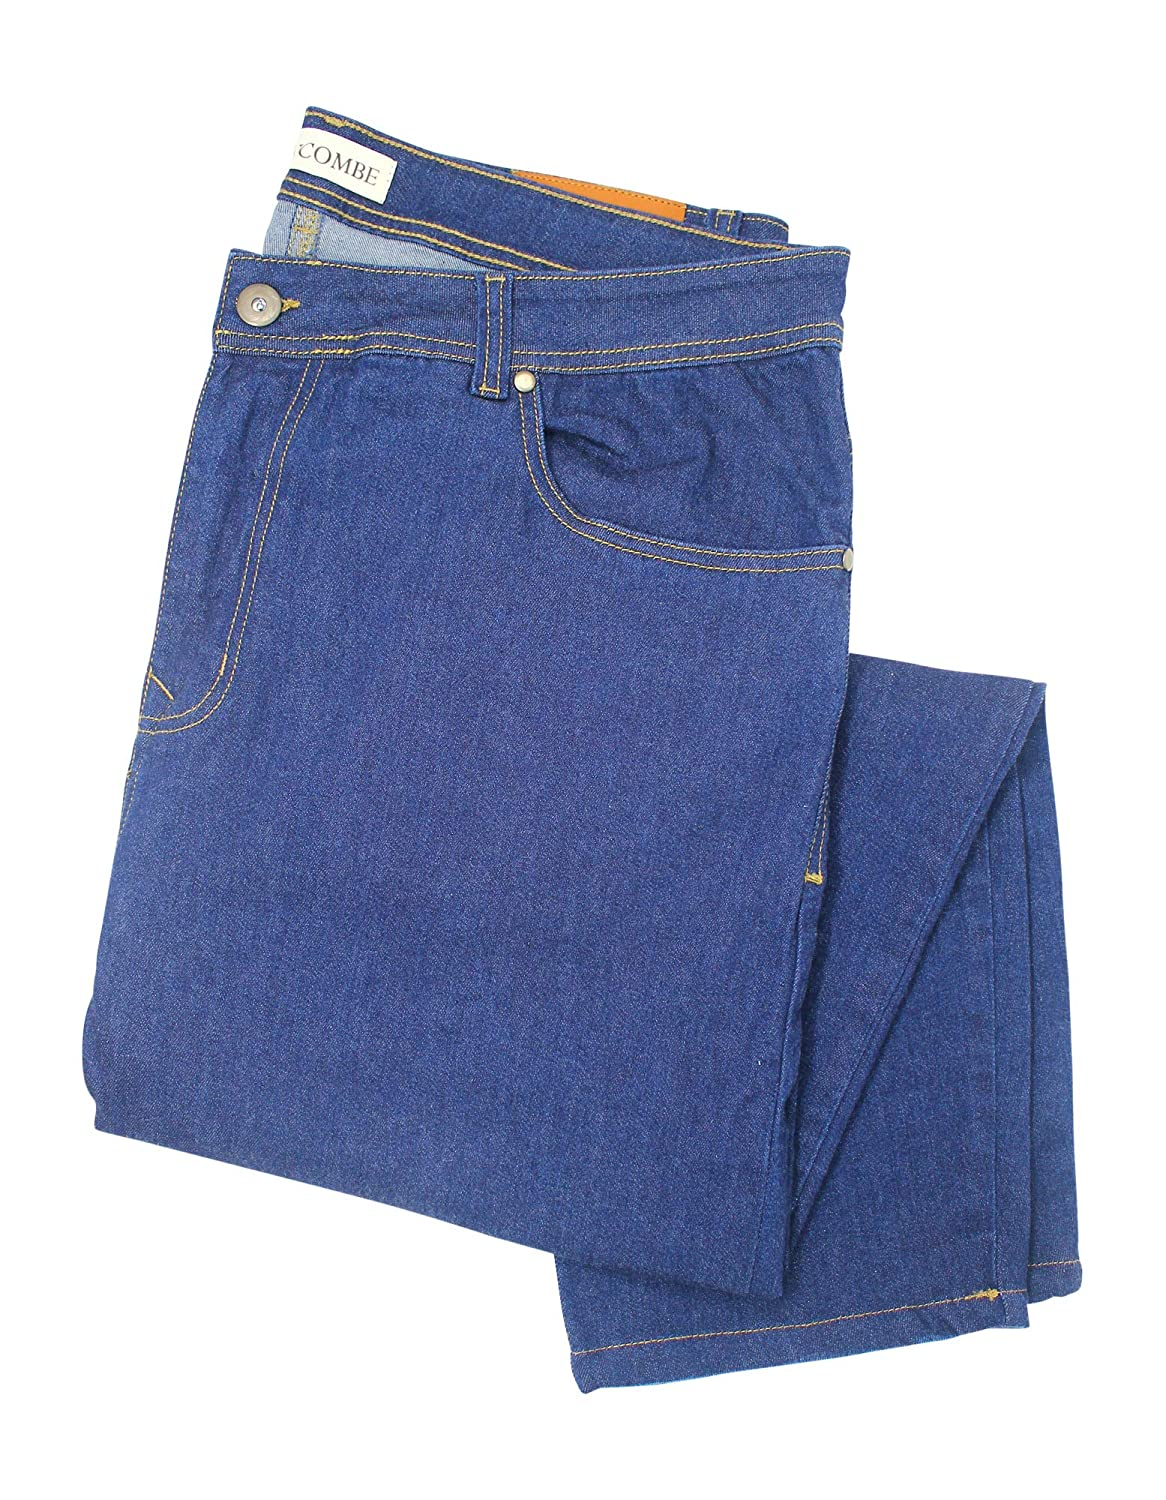 effef8dbf743 A 28 INSEAM JEAN DESIGNED FOR SHORTER MEN: 1 in 10 men are under 66 Inches  tall but it may feel like you are the only man alive who can't find jeans  ...